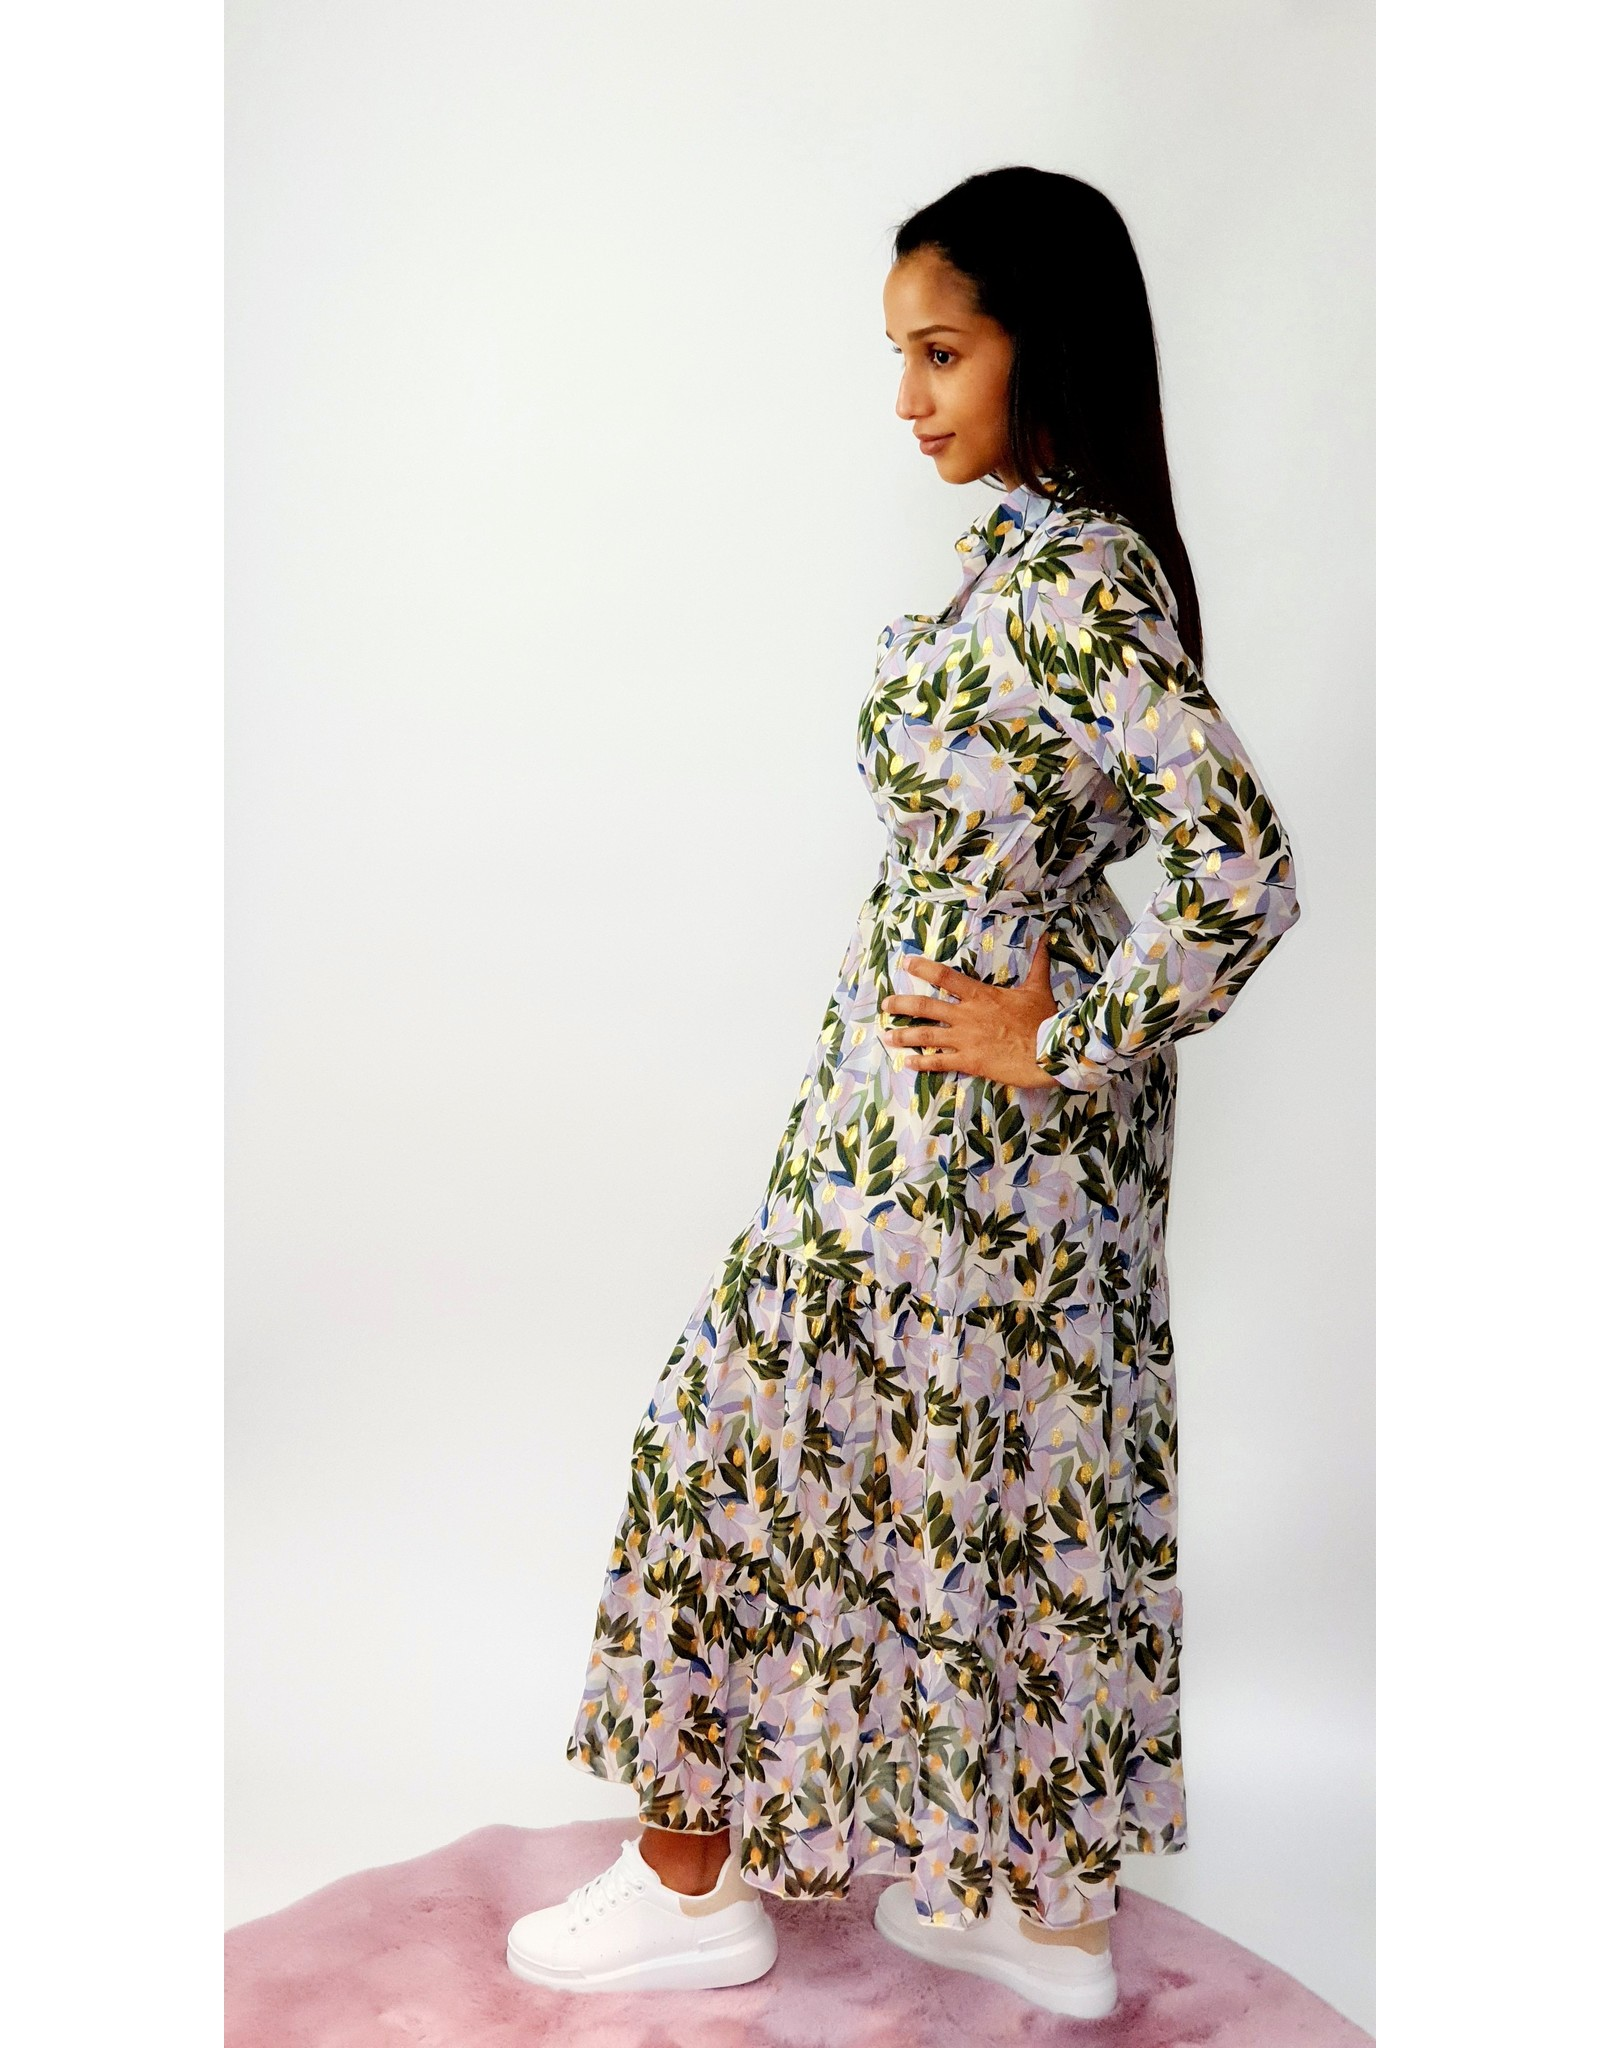 Thé lilac meets garden dress